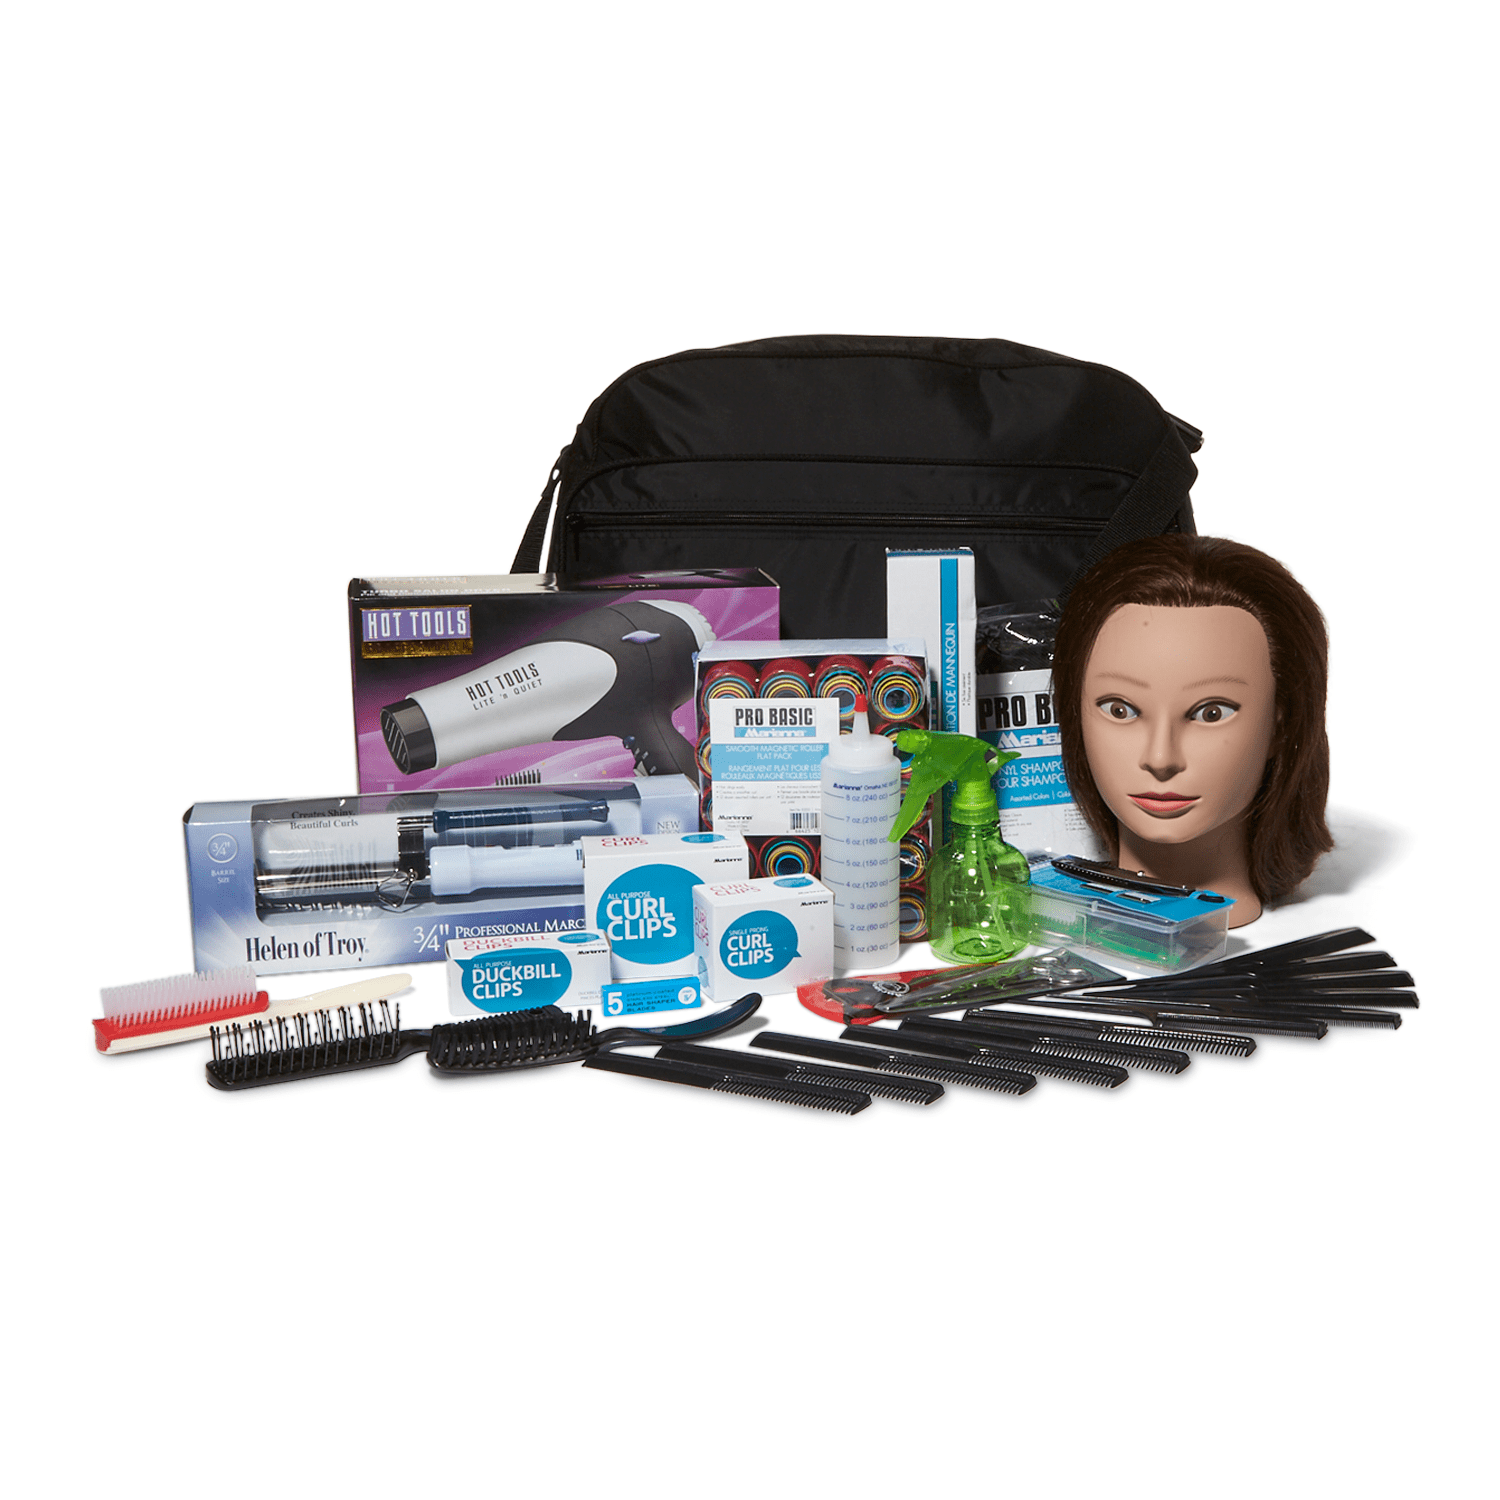 Soft Side Plete Beauty School Kit With Hairdryer